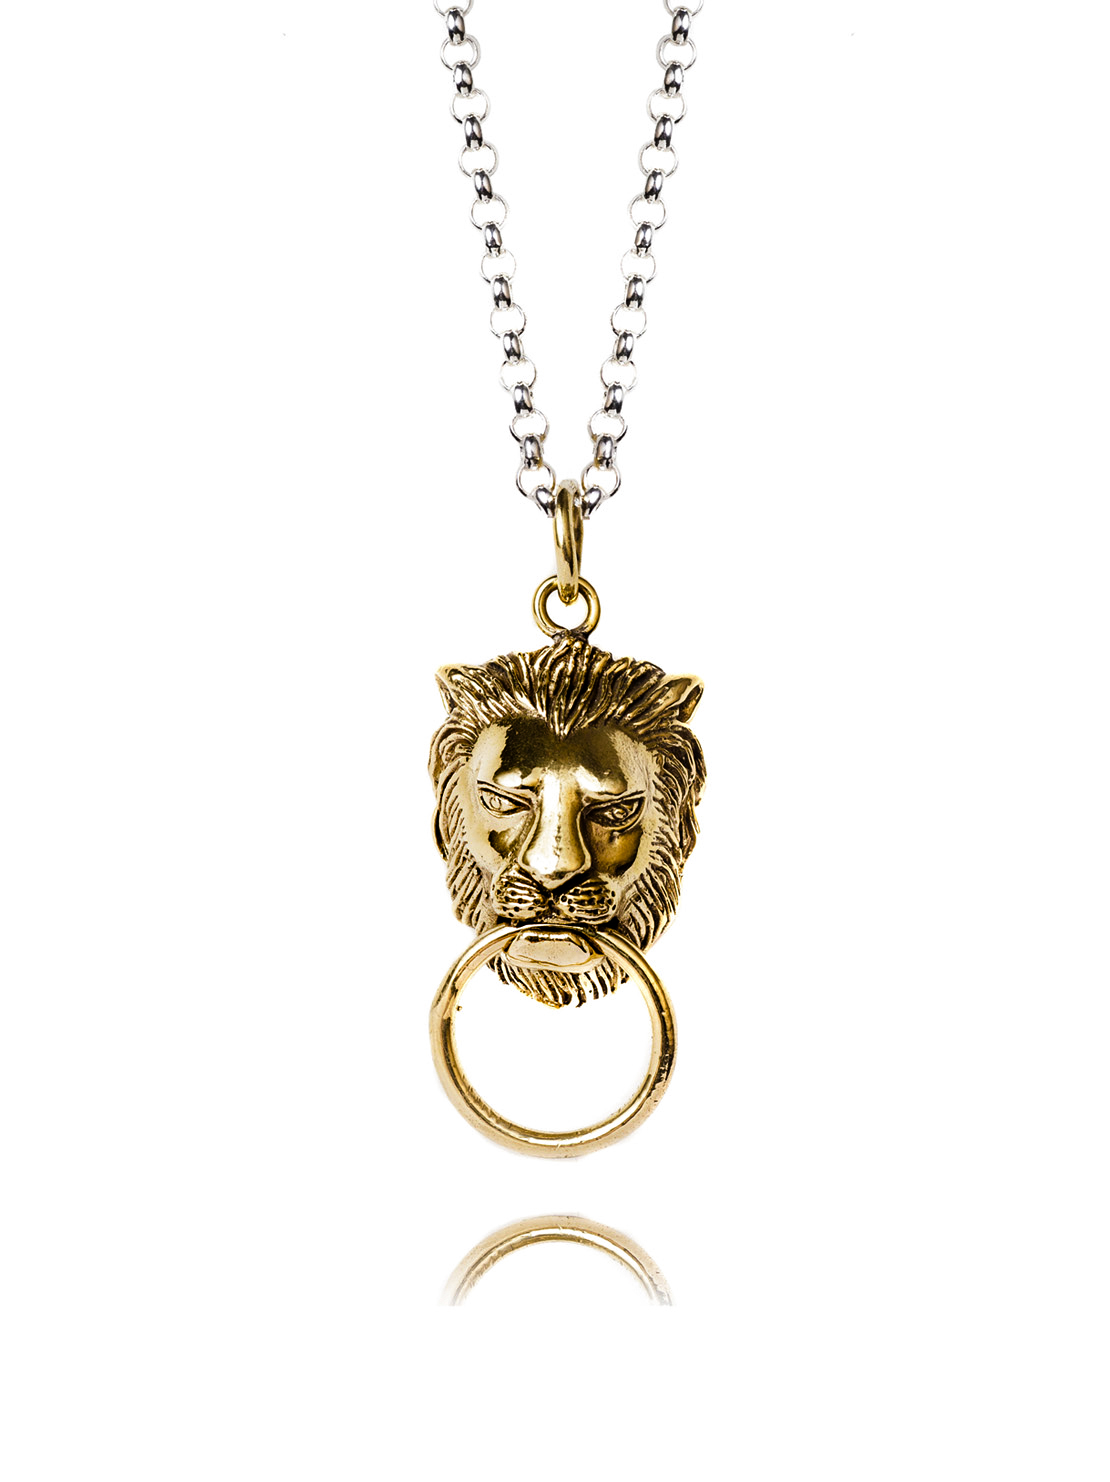 Brass Lion Door Knocker Necklace On Belcher Chain